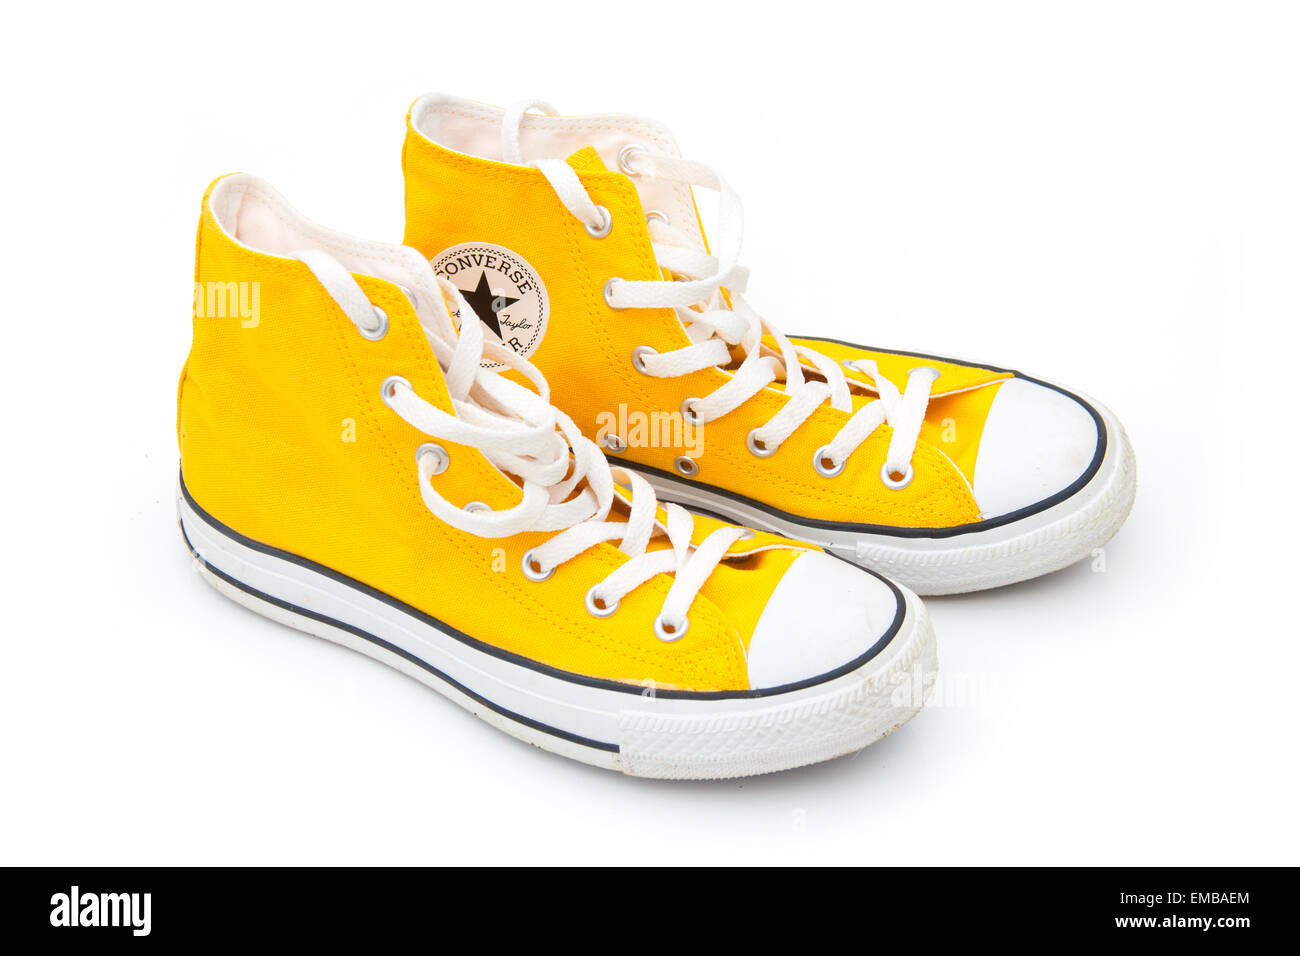 Yellow Converse boots isolated on a white studio background. - Stock Image